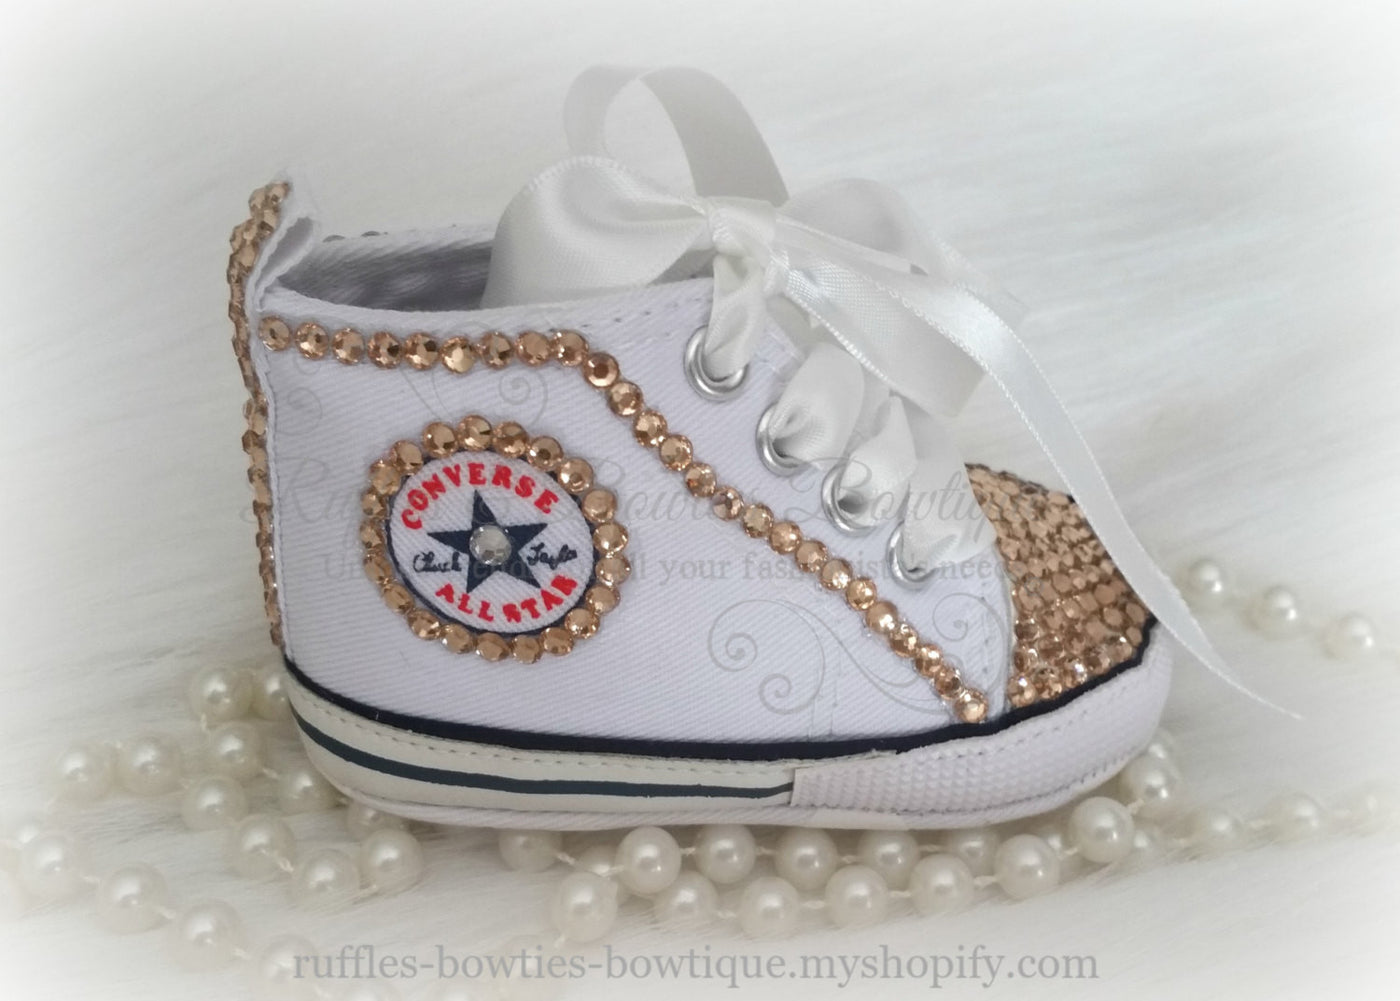 869d9a5ffea7 White and Gold Crystal Baby Converse High Tops- Crystal Shoes - Pre Walker  Shoes ...